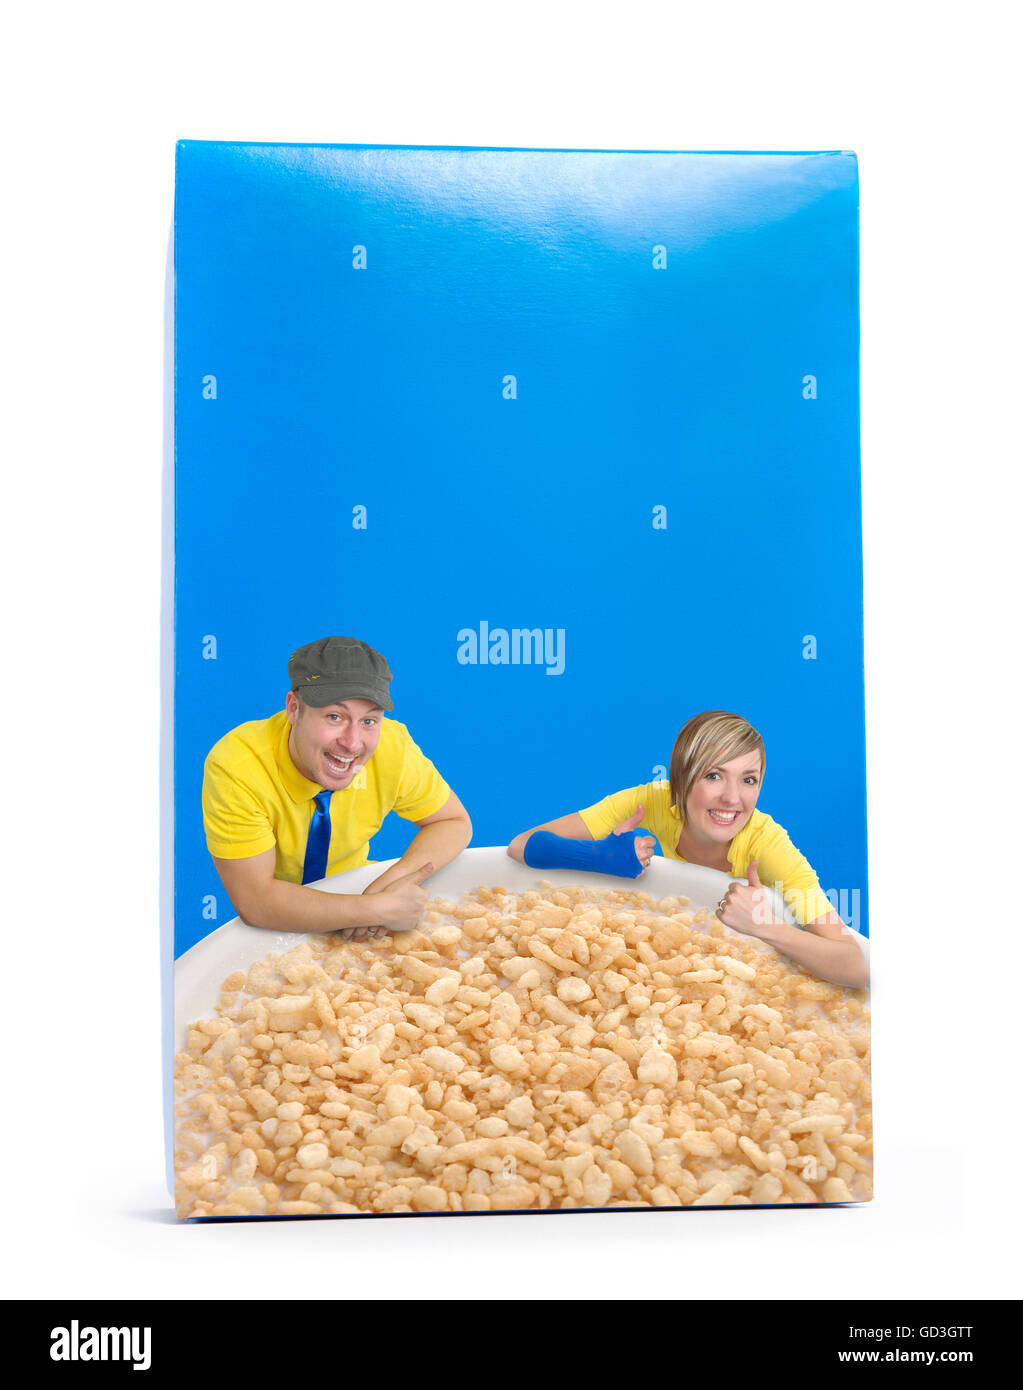 Young man and woman propping on a bowl of cereal, label of a blue box Stock Photo